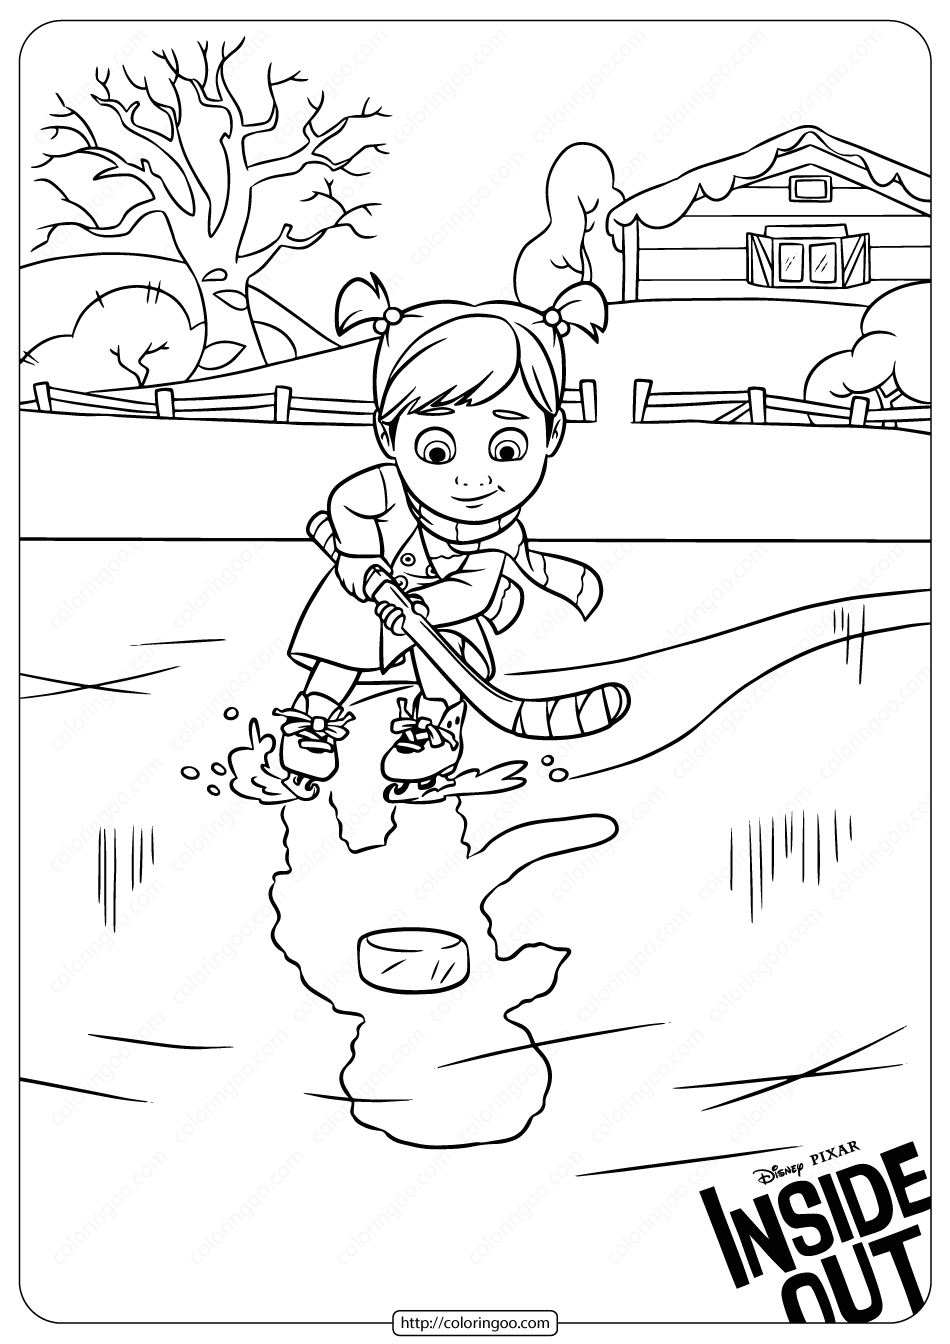 Disney Inside Out Riley Coloring Pages Disney Coloring Pages Coloring Pages Inside Out Riley